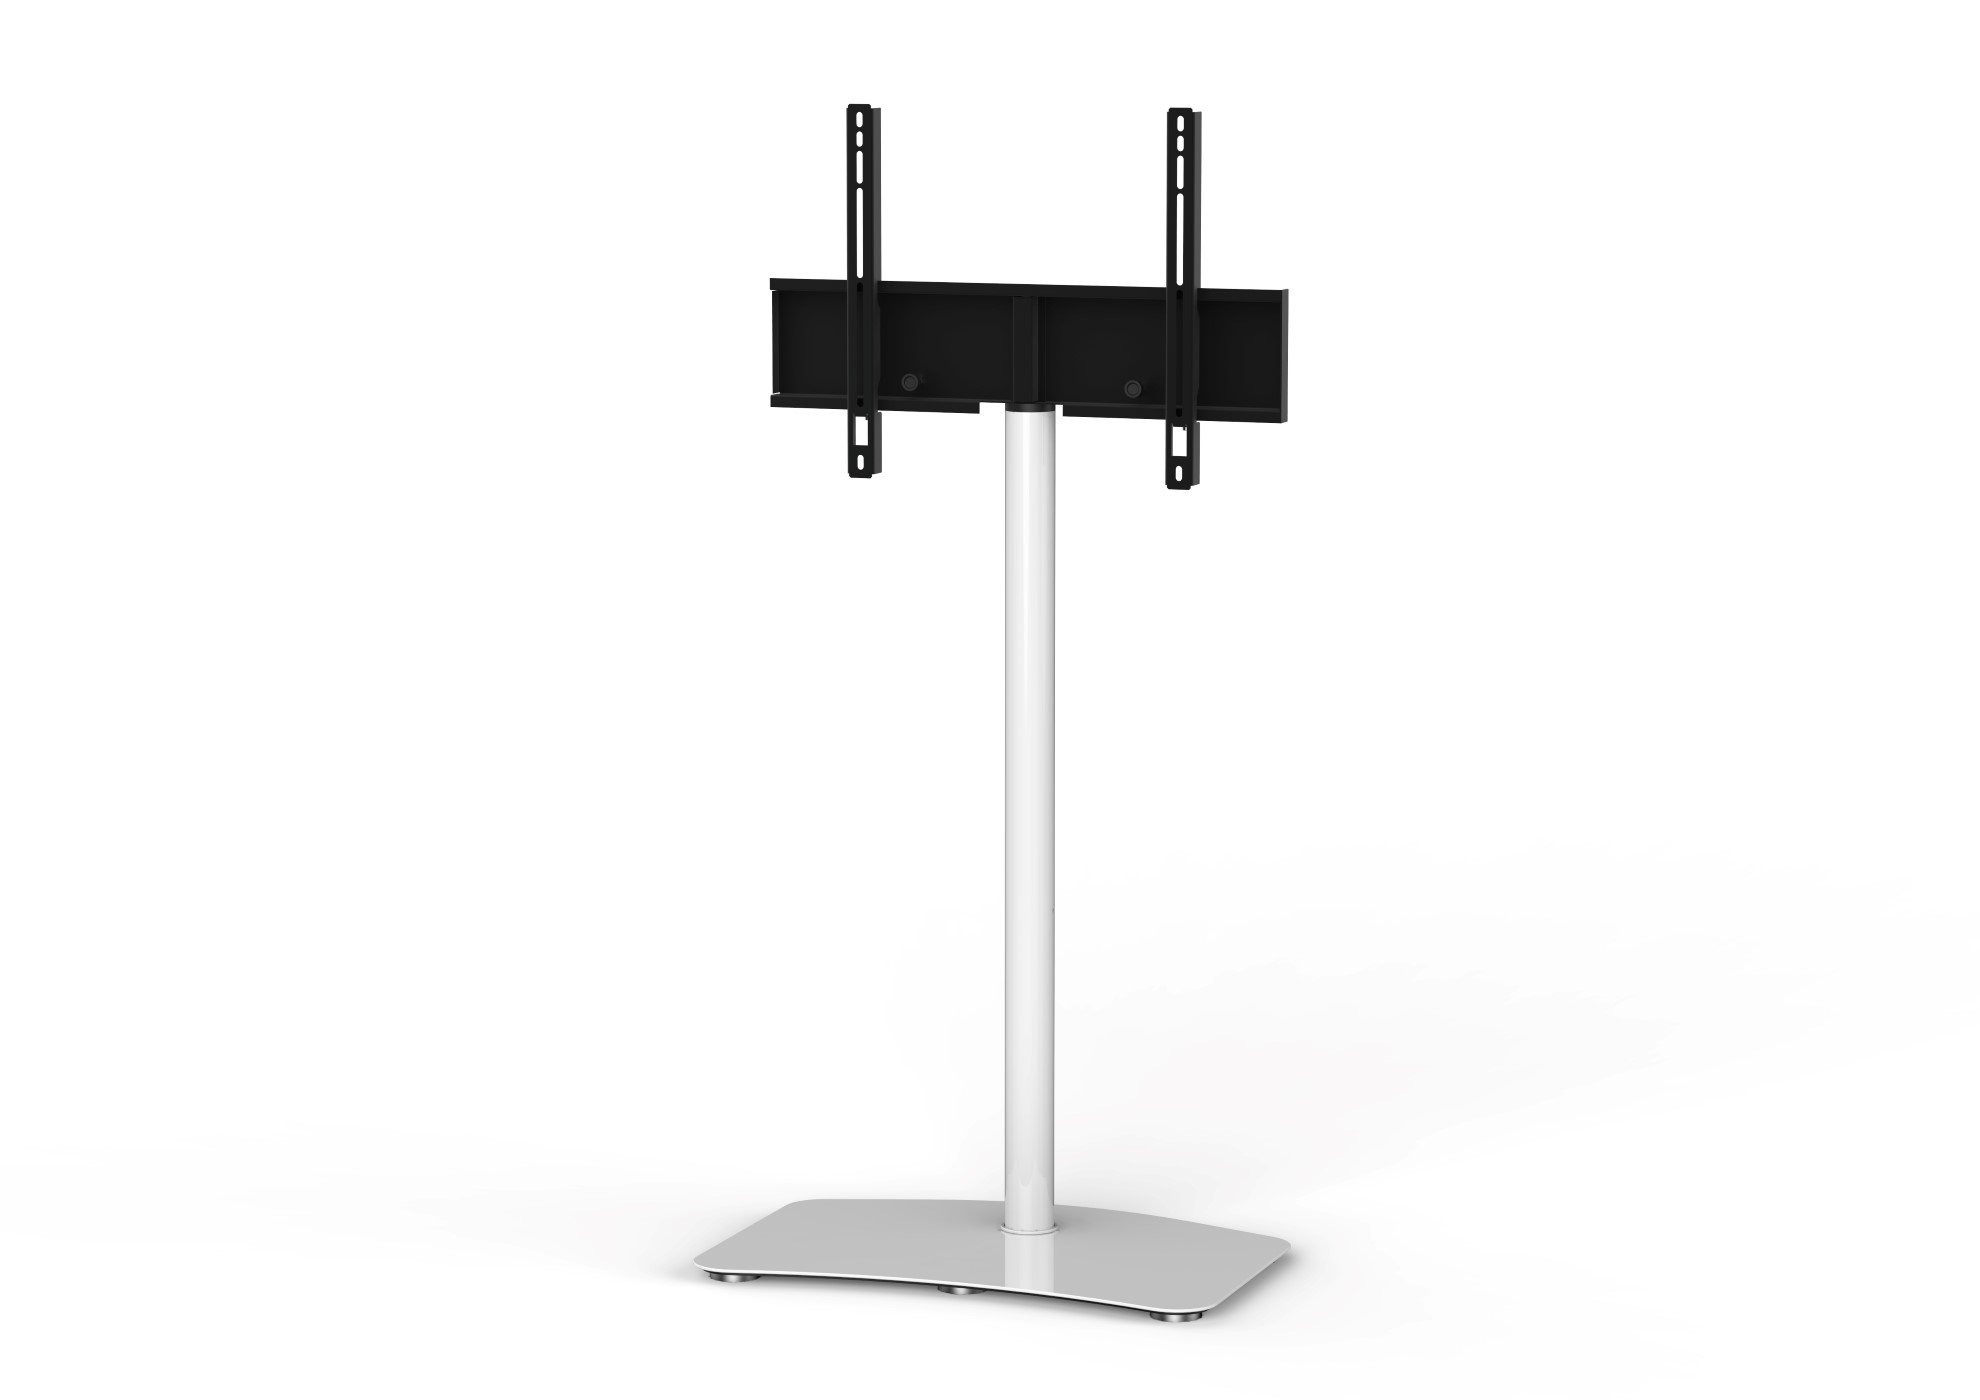 SONOROUS TV Stand PL2800 WHT for Up to 65 Inches TV - Floor Stand TV Bracket for LCD, LED & Flat Screen - Fixed TV Stand with Tempered Glass Base, 45 Degree Swivel & Wire Management - White